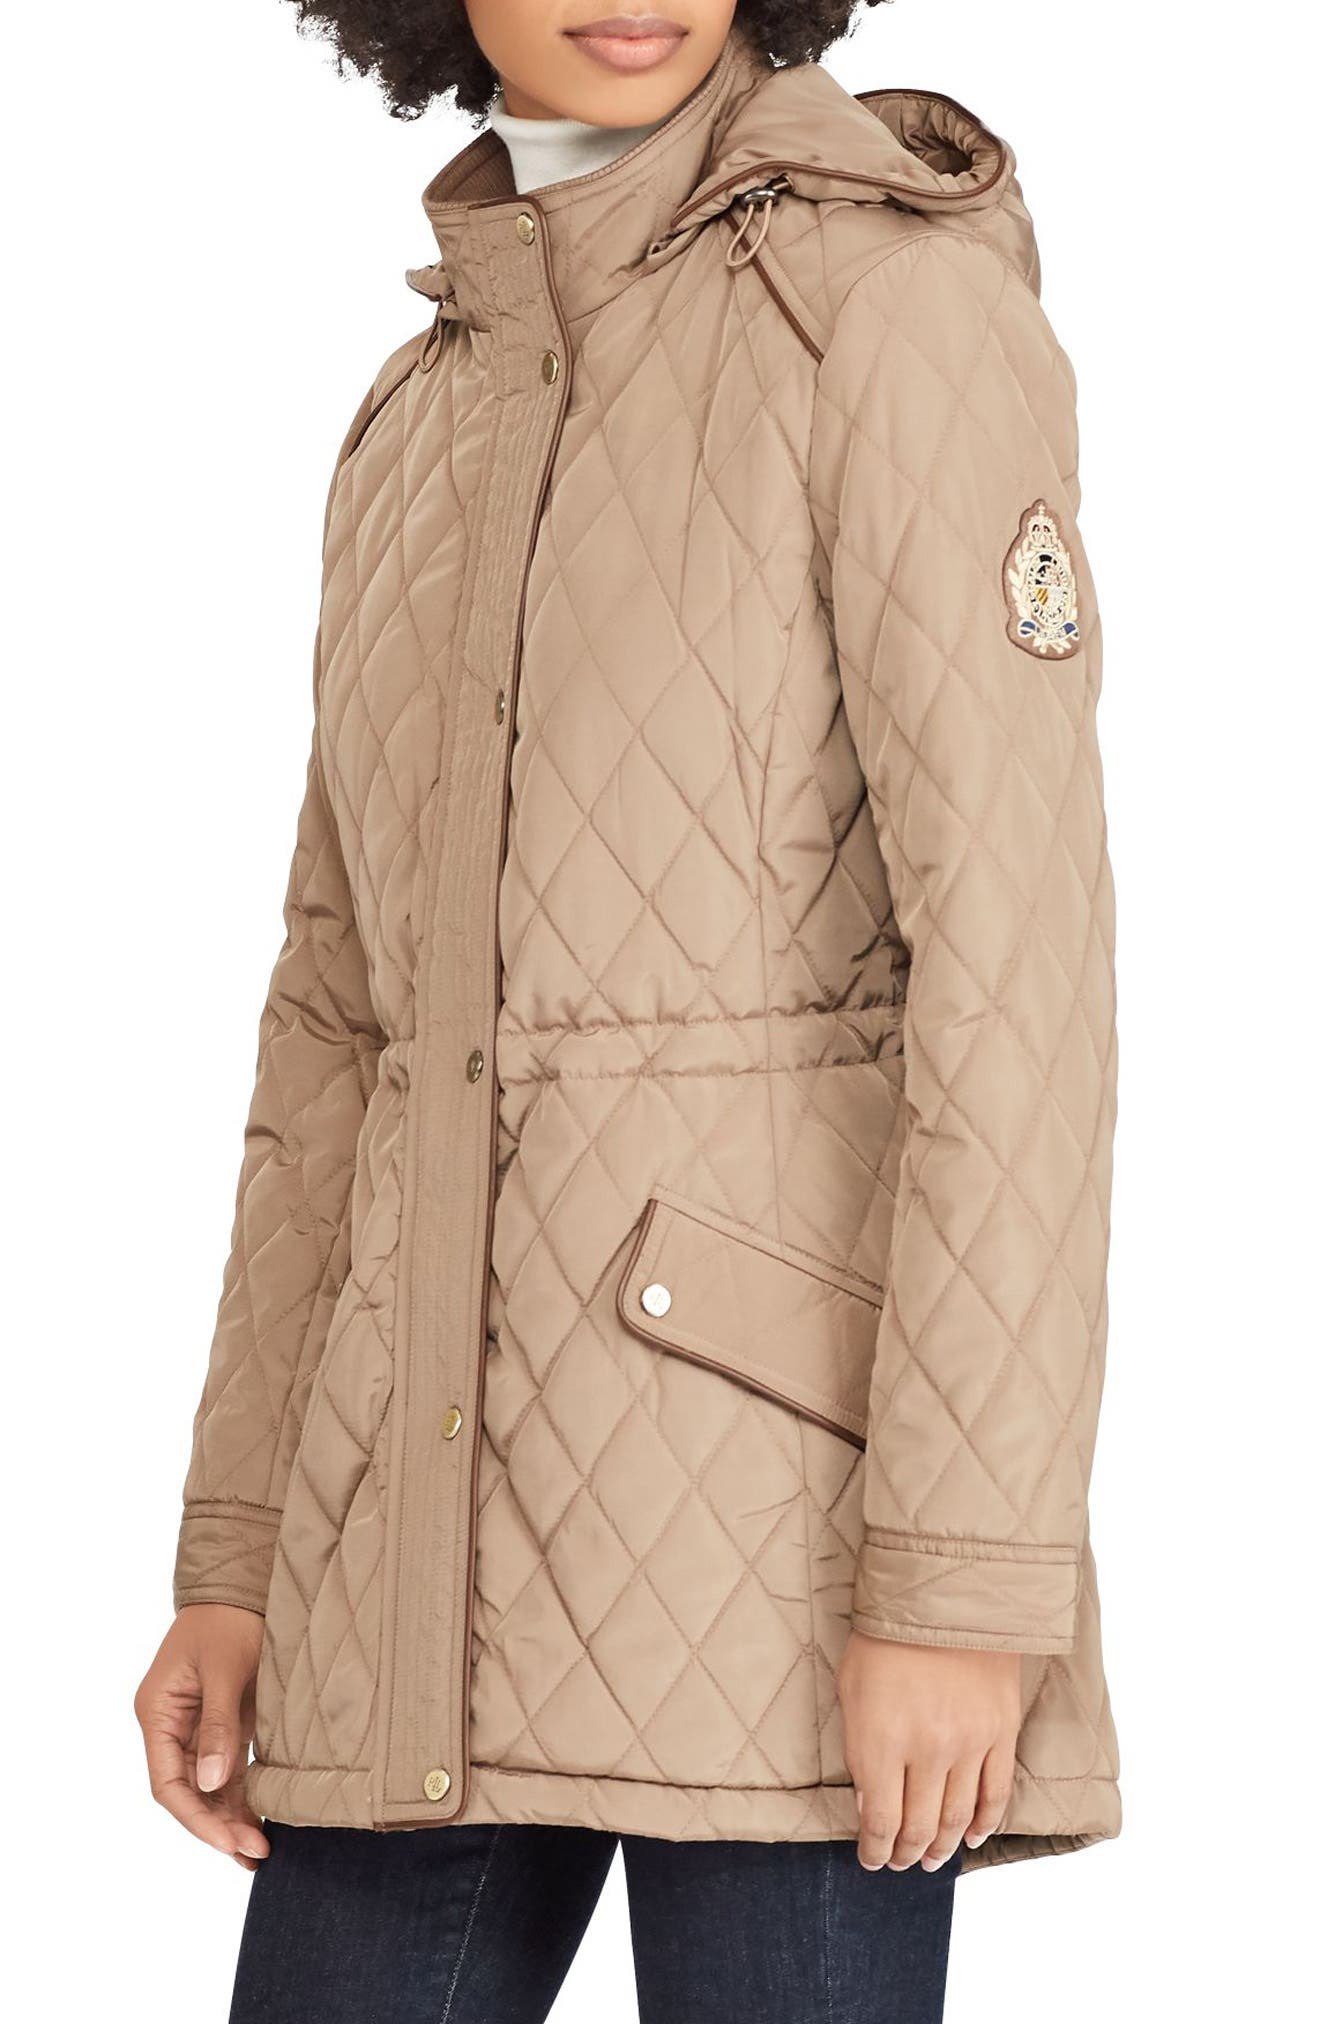 Lauren Ralph Lauren Quilted Coat (Regular \u0026 Petite)